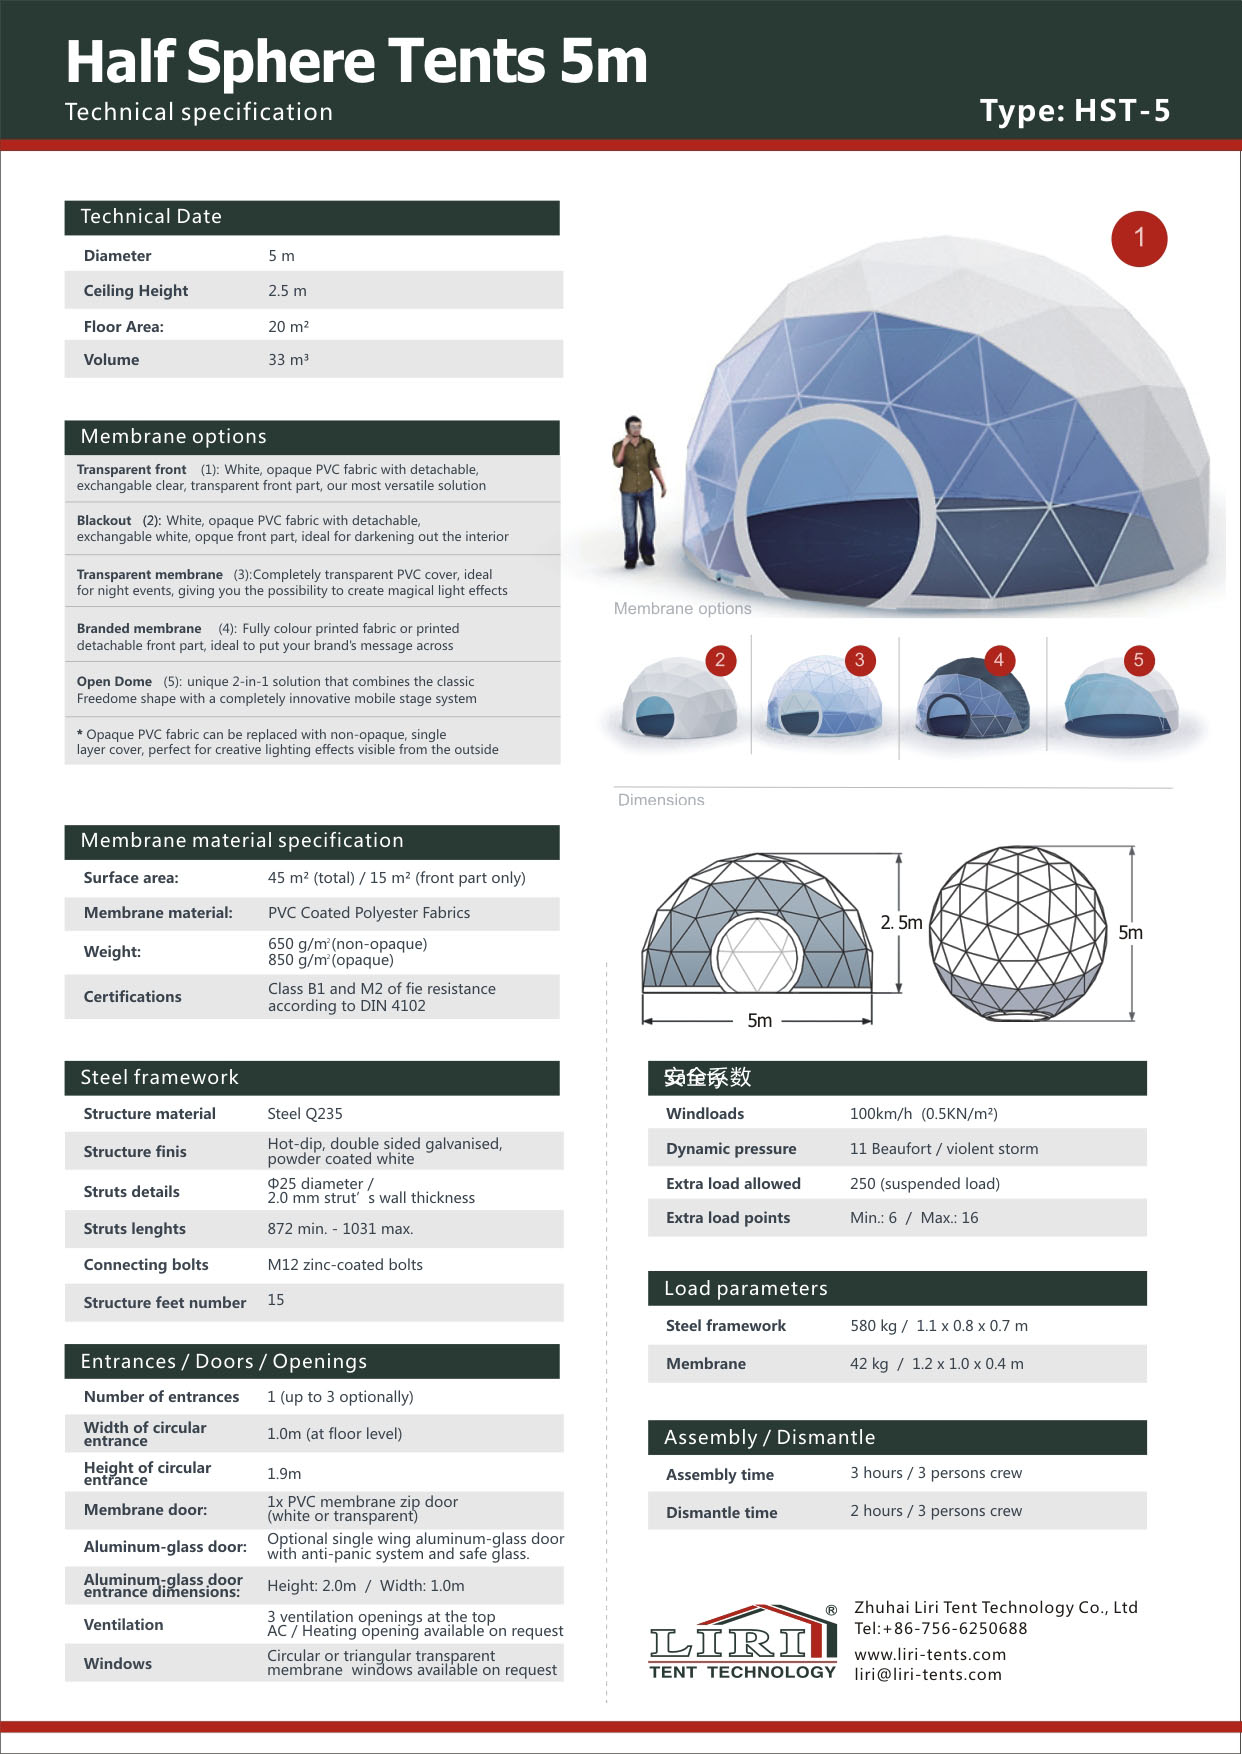 Technical Data for 5m half sphere tent